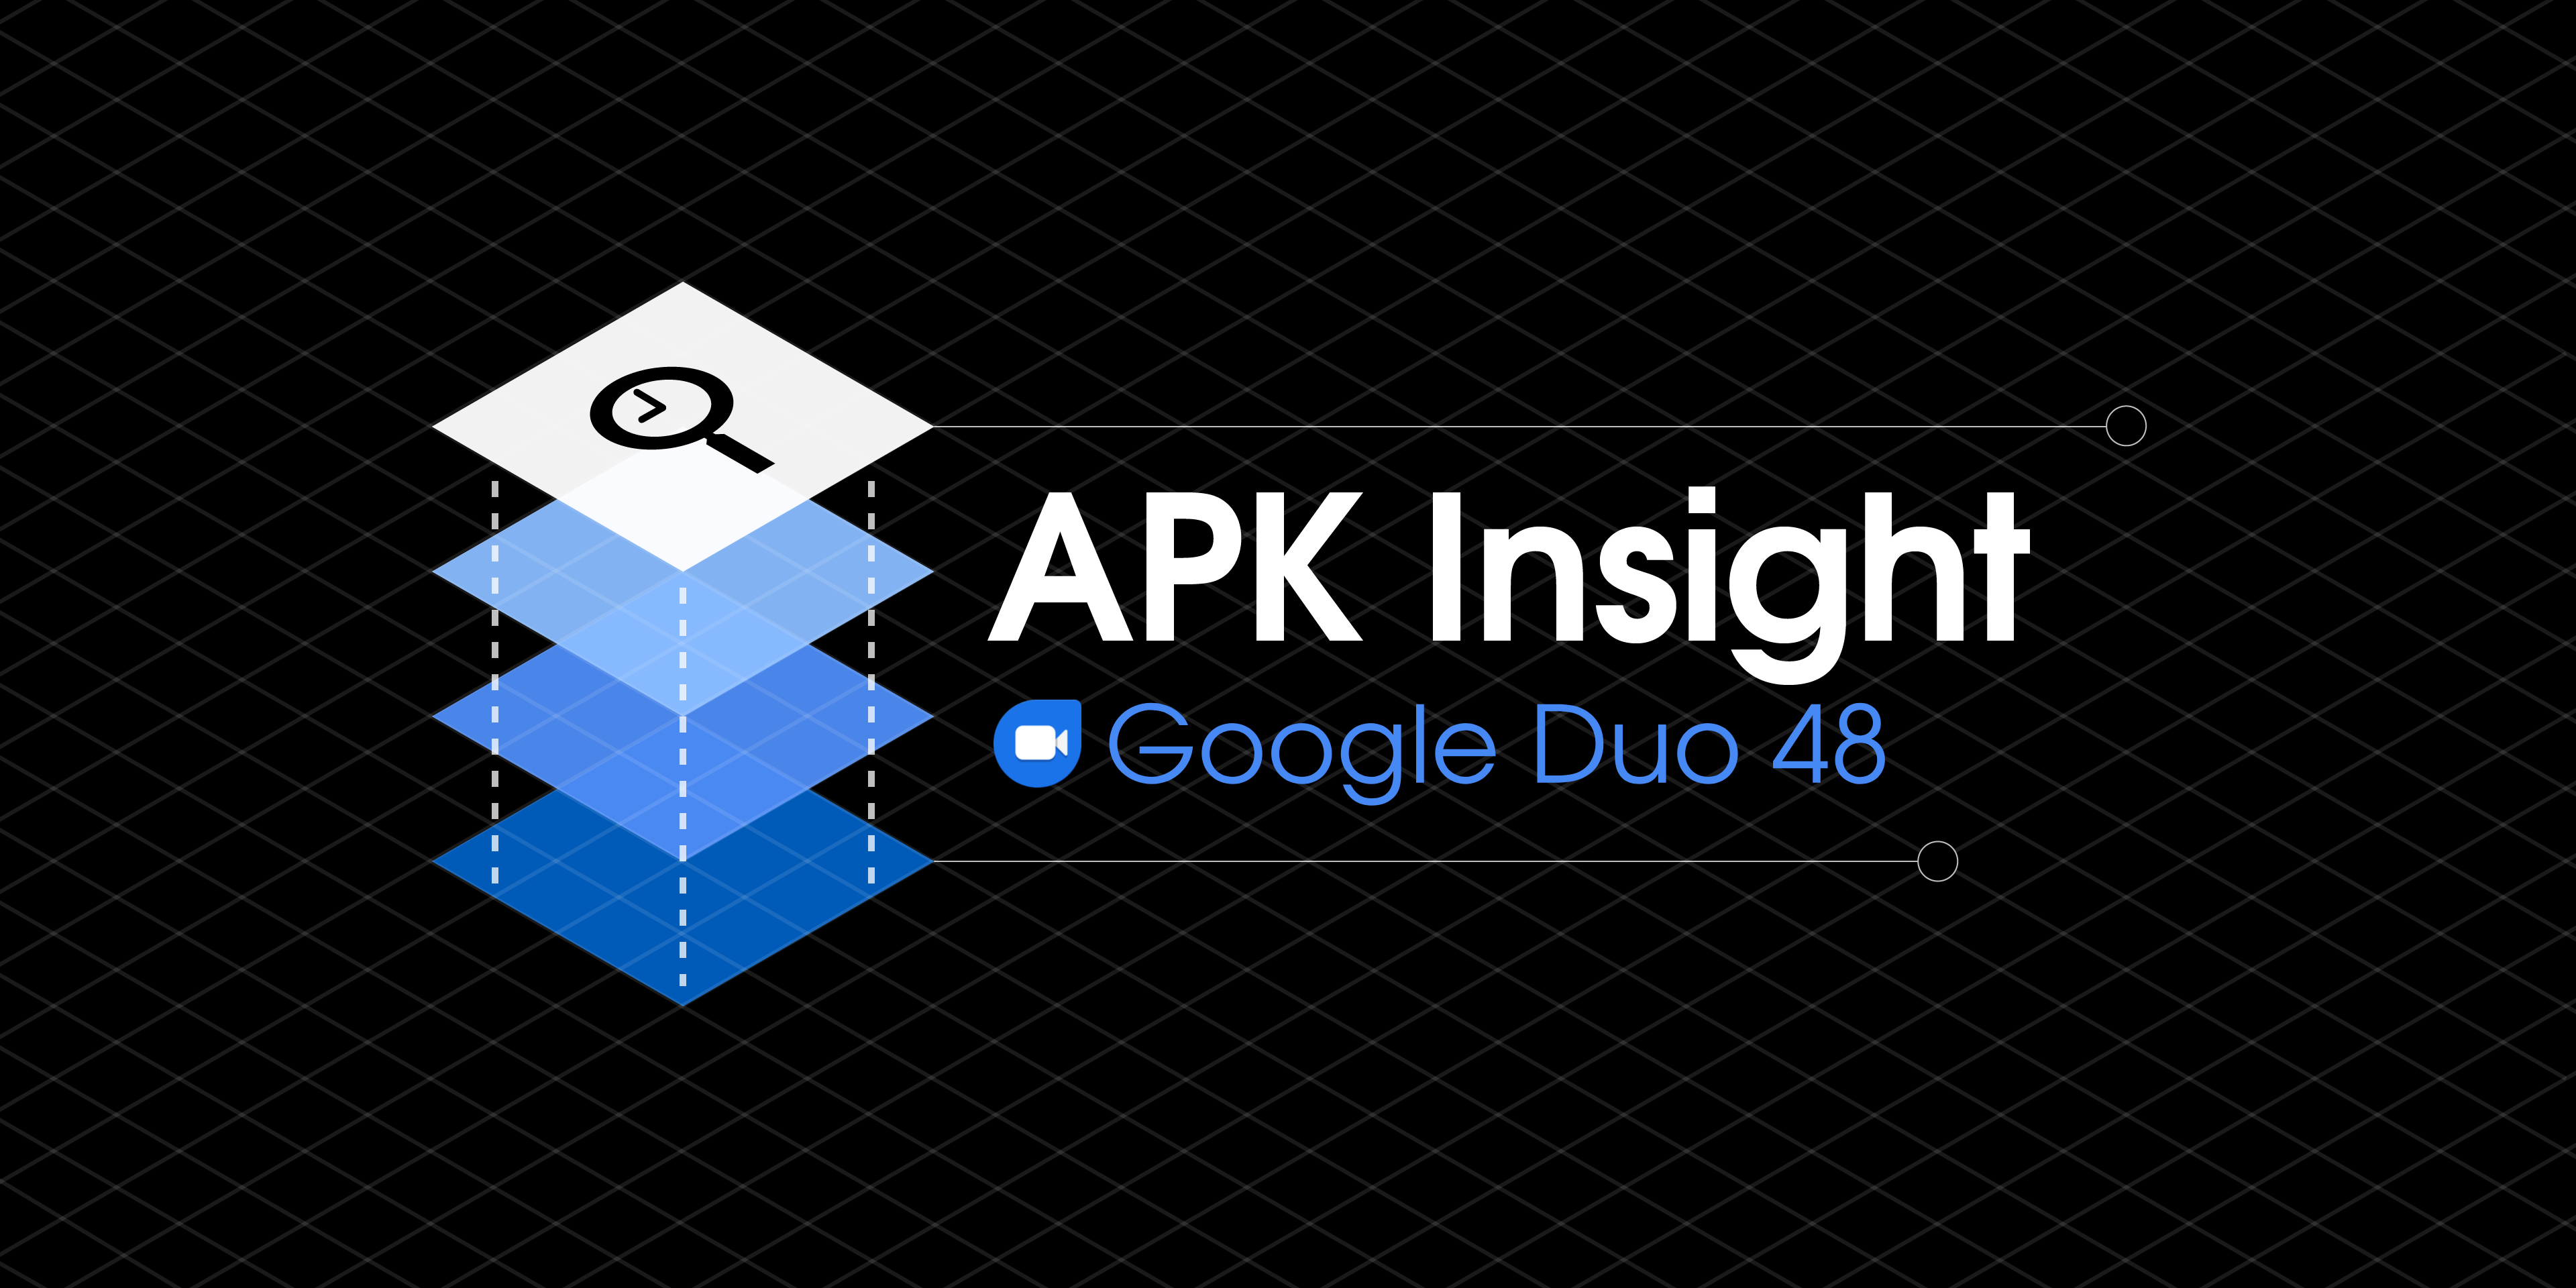 Google Duo 48 preps 'precall' contacts interface, 'Engagement Rewards by Google' [APK Insight]